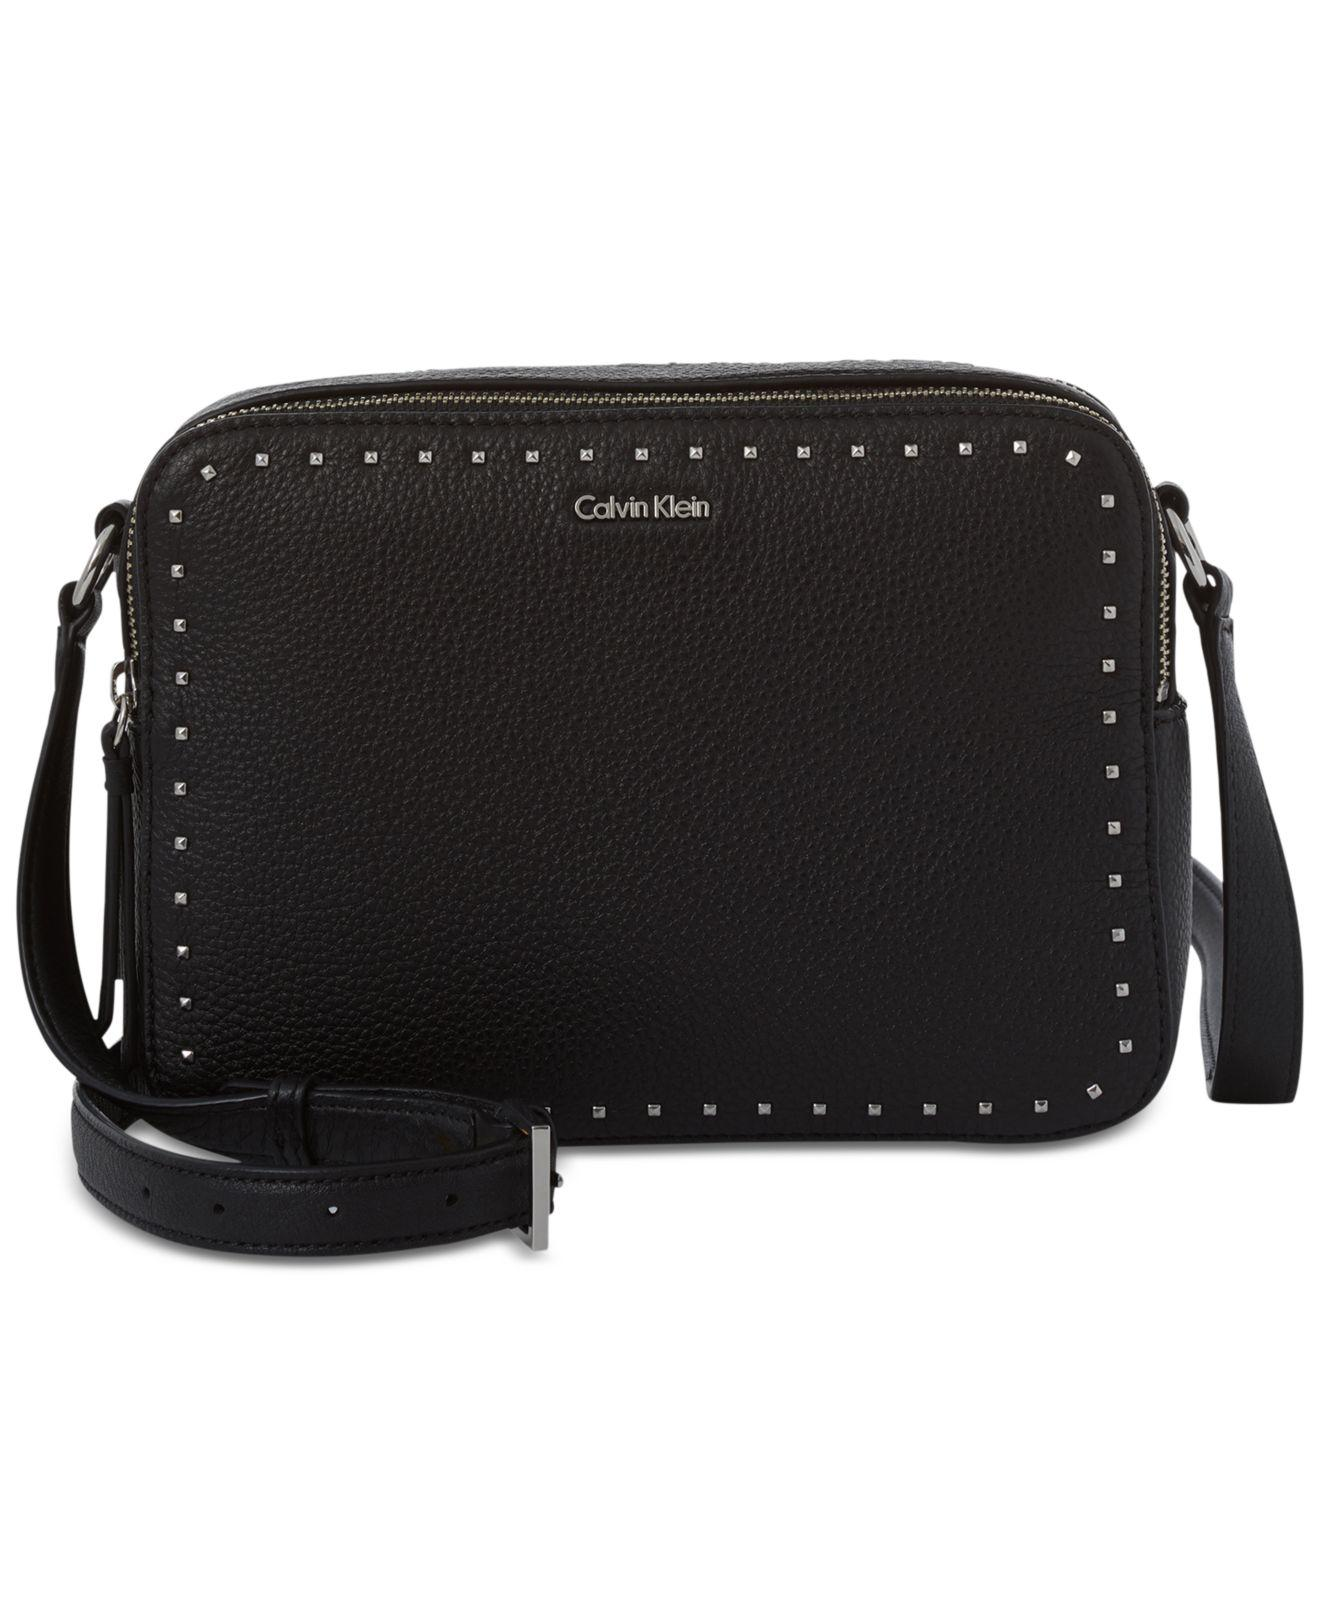 8d2c977164 Gallery. Previously sold at: Macy's · Women's Camera Bags Women's Calvin  Klein Crossbody